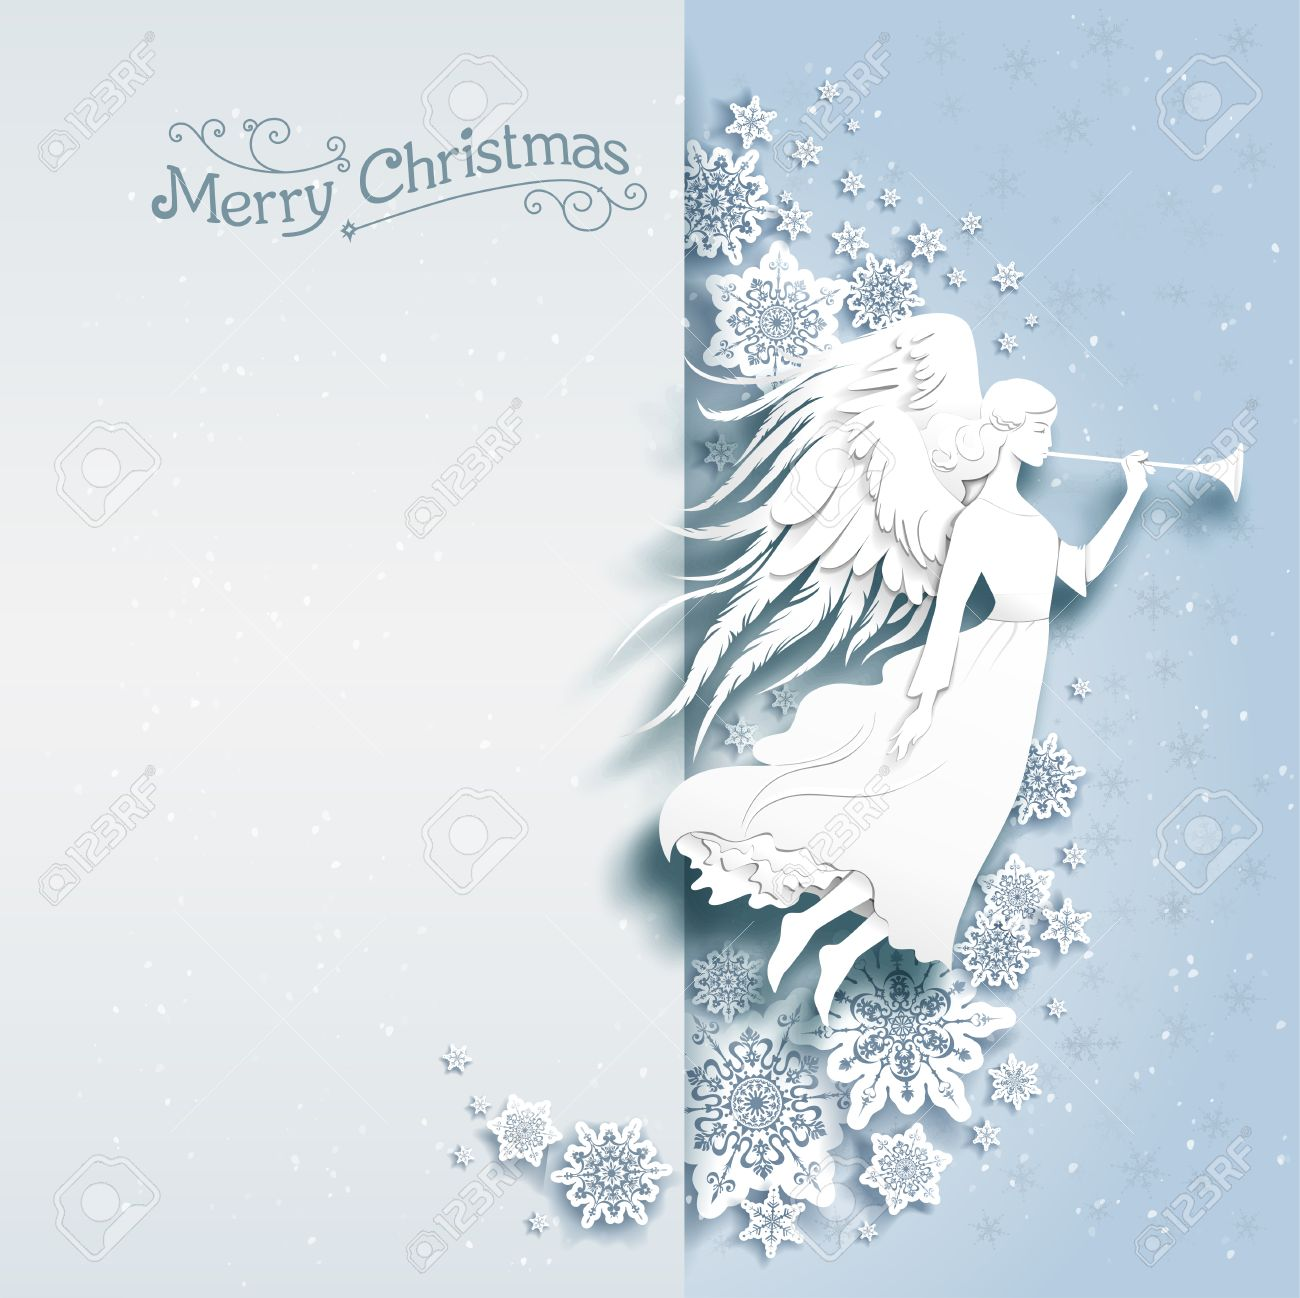 Christmas card with silhouette of an angel on a snowy background. Luxury Christmas design for card, banner,ticket, leaflet and so on. - 49779579